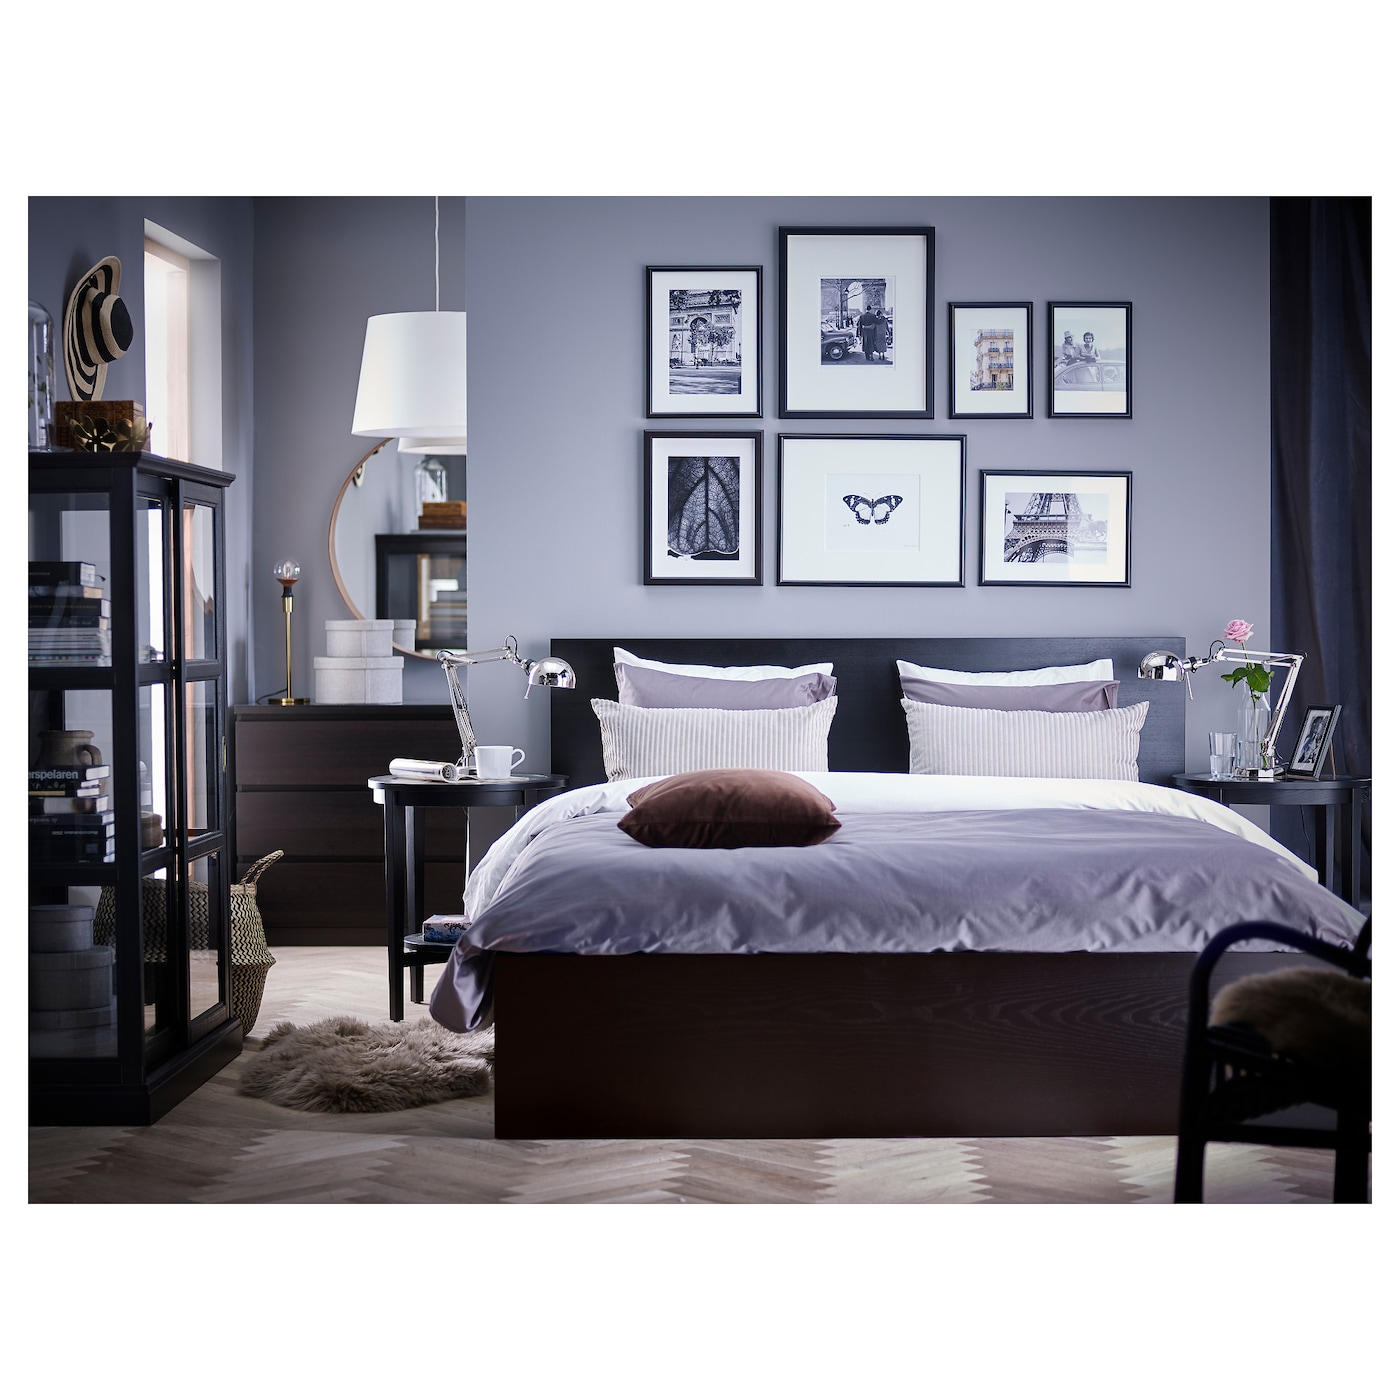 malm cadre de lit haut brun noir 140 x 200 cm ikea. Black Bedroom Furniture Sets. Home Design Ideas